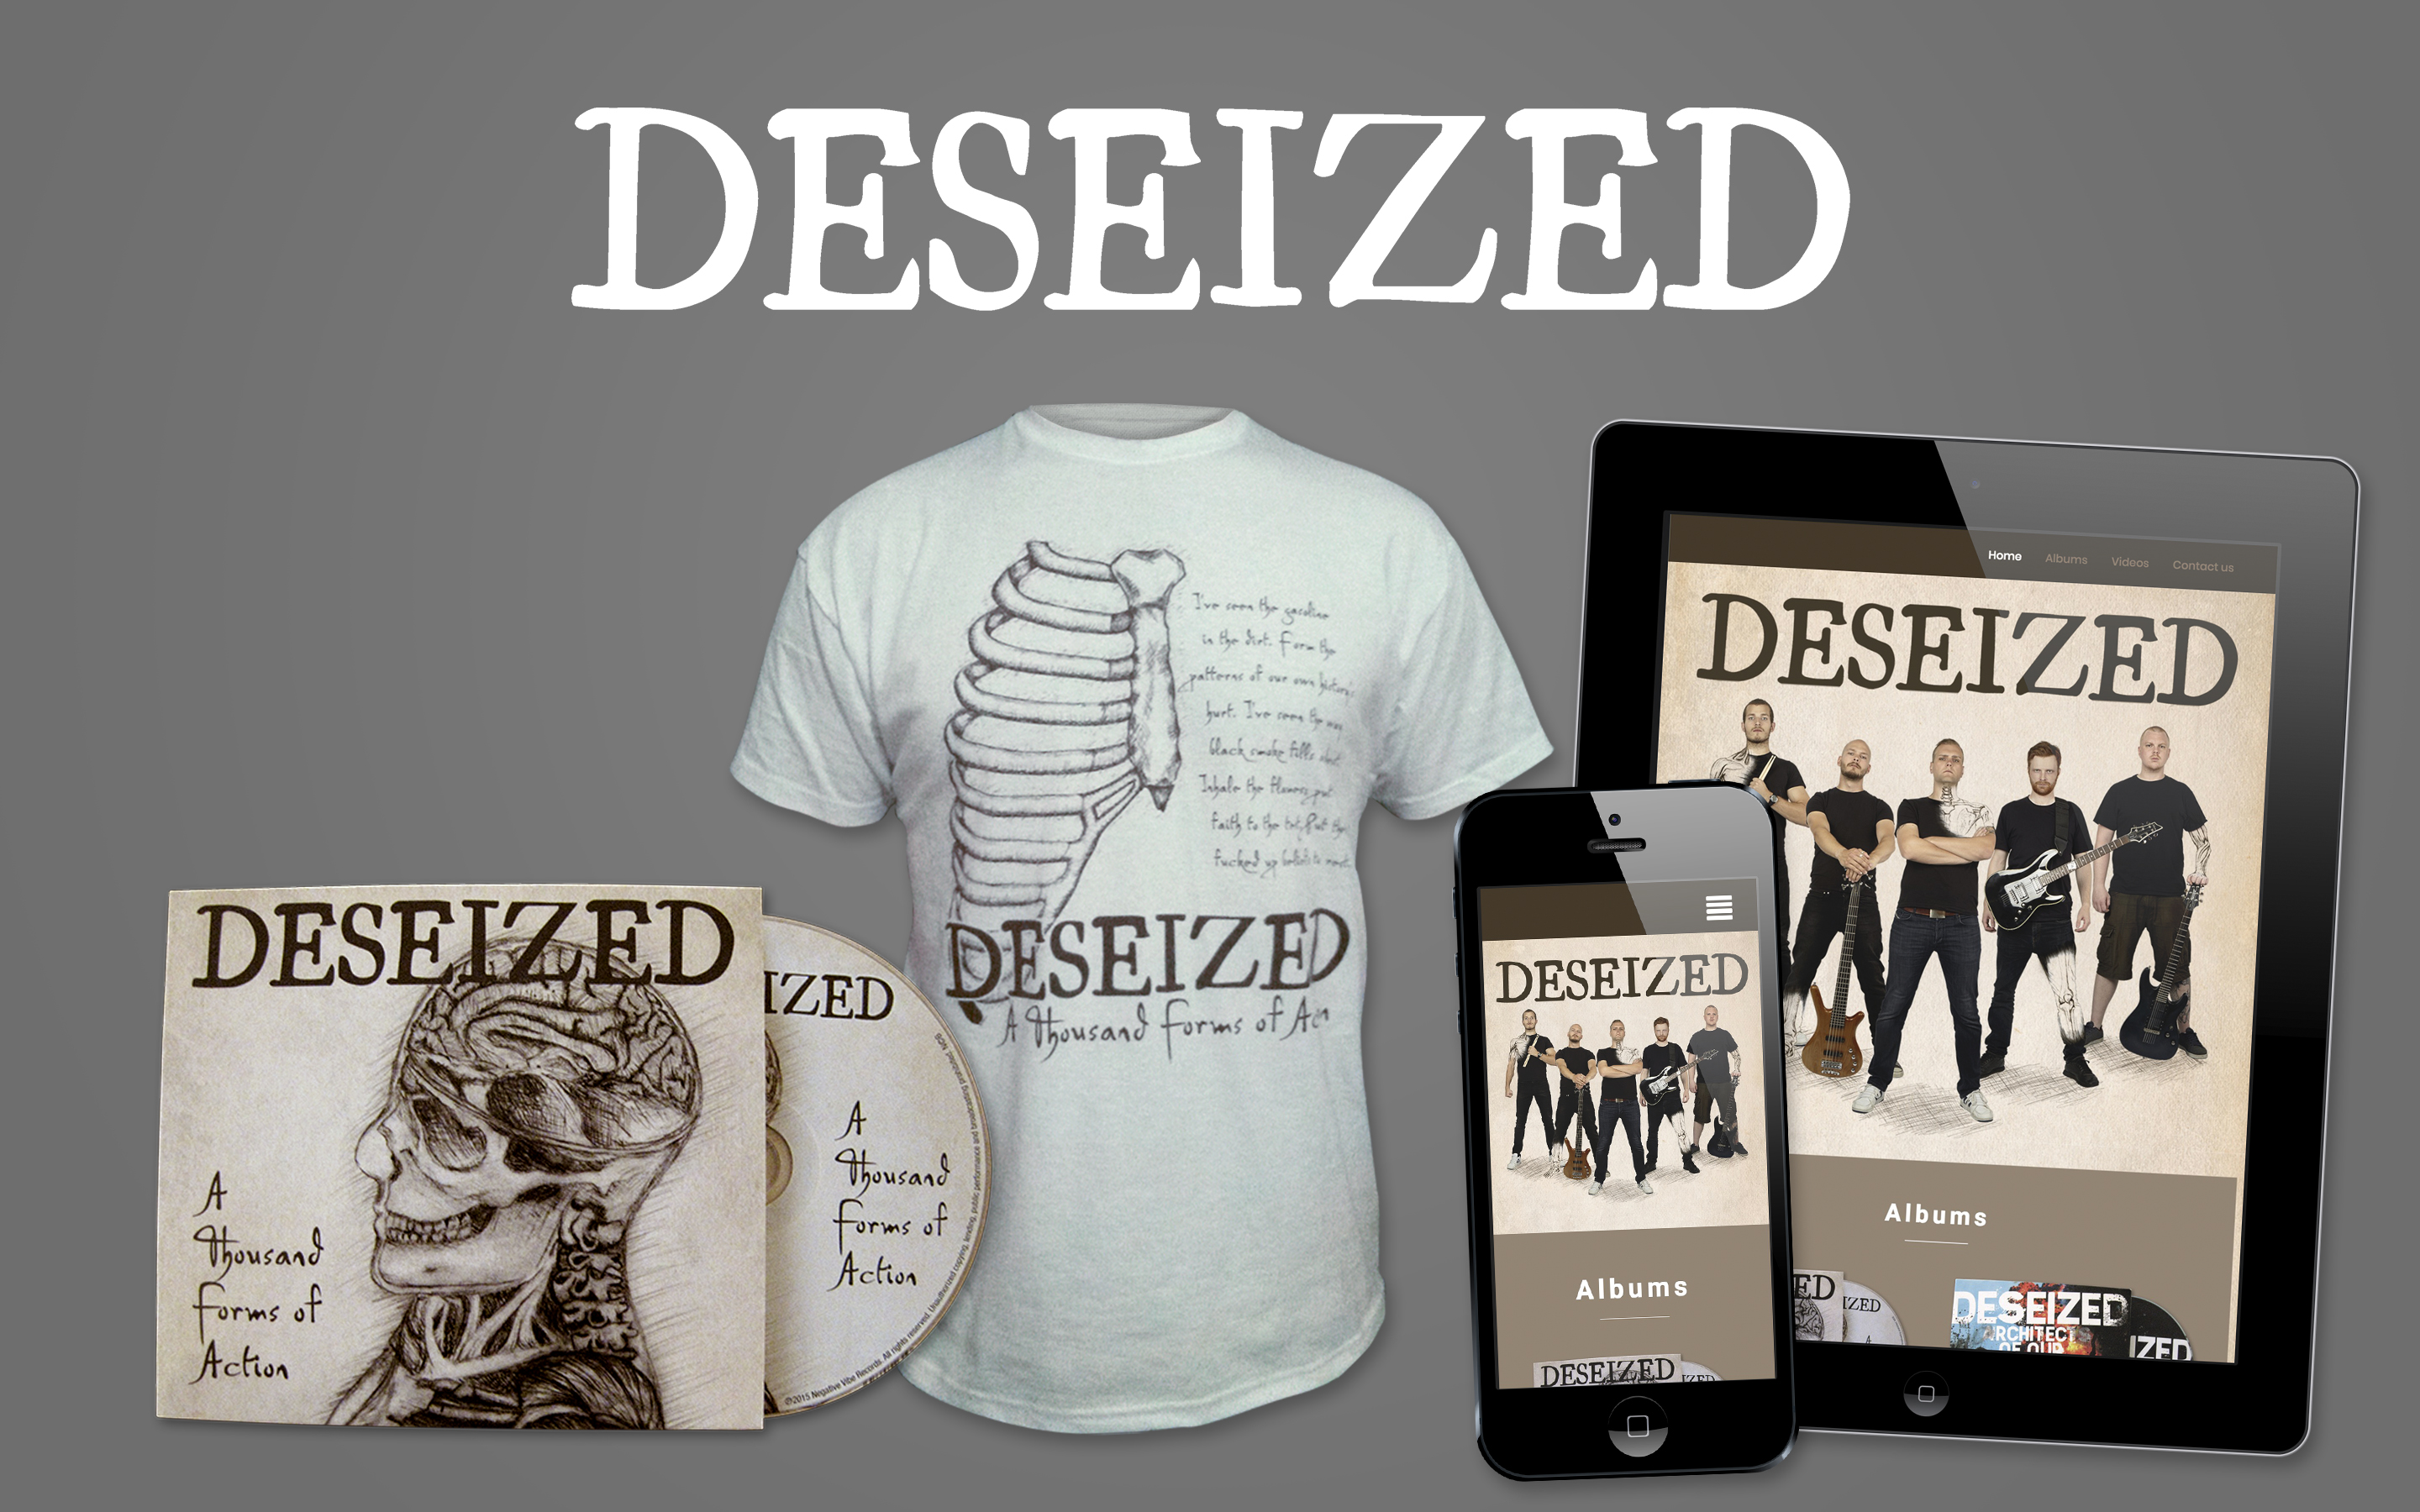 Deseized A Thousand Forms of Action